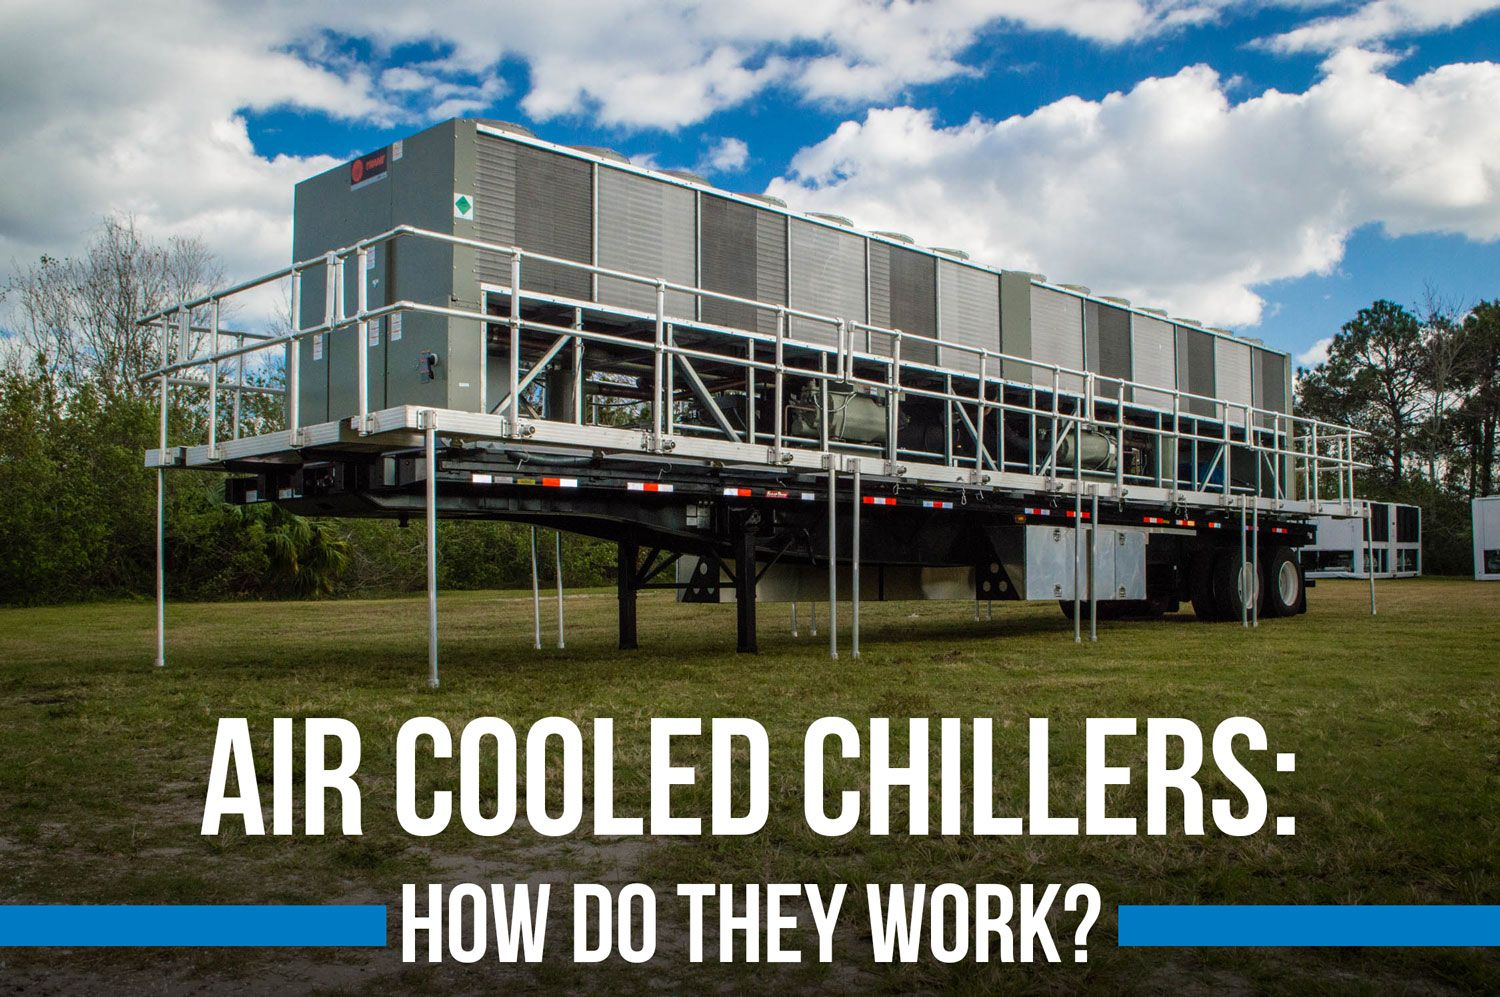 An industrial aircooled chiller is a refrigeration system